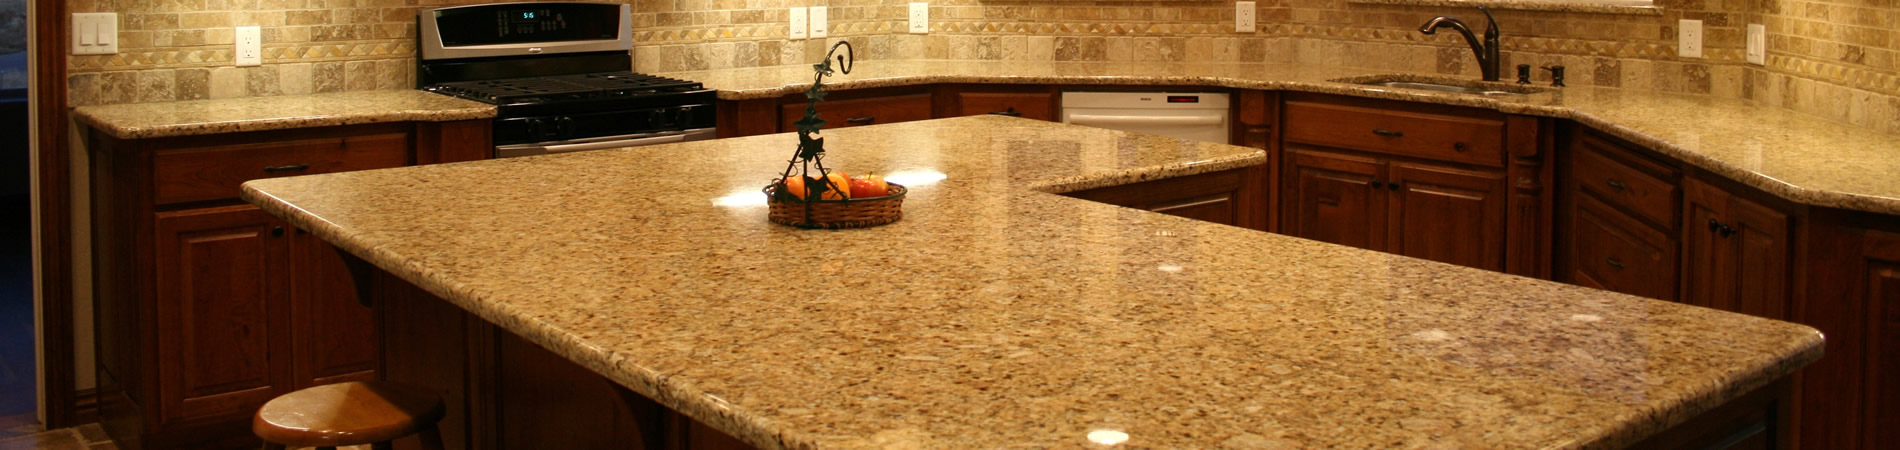 Granite worktops prices